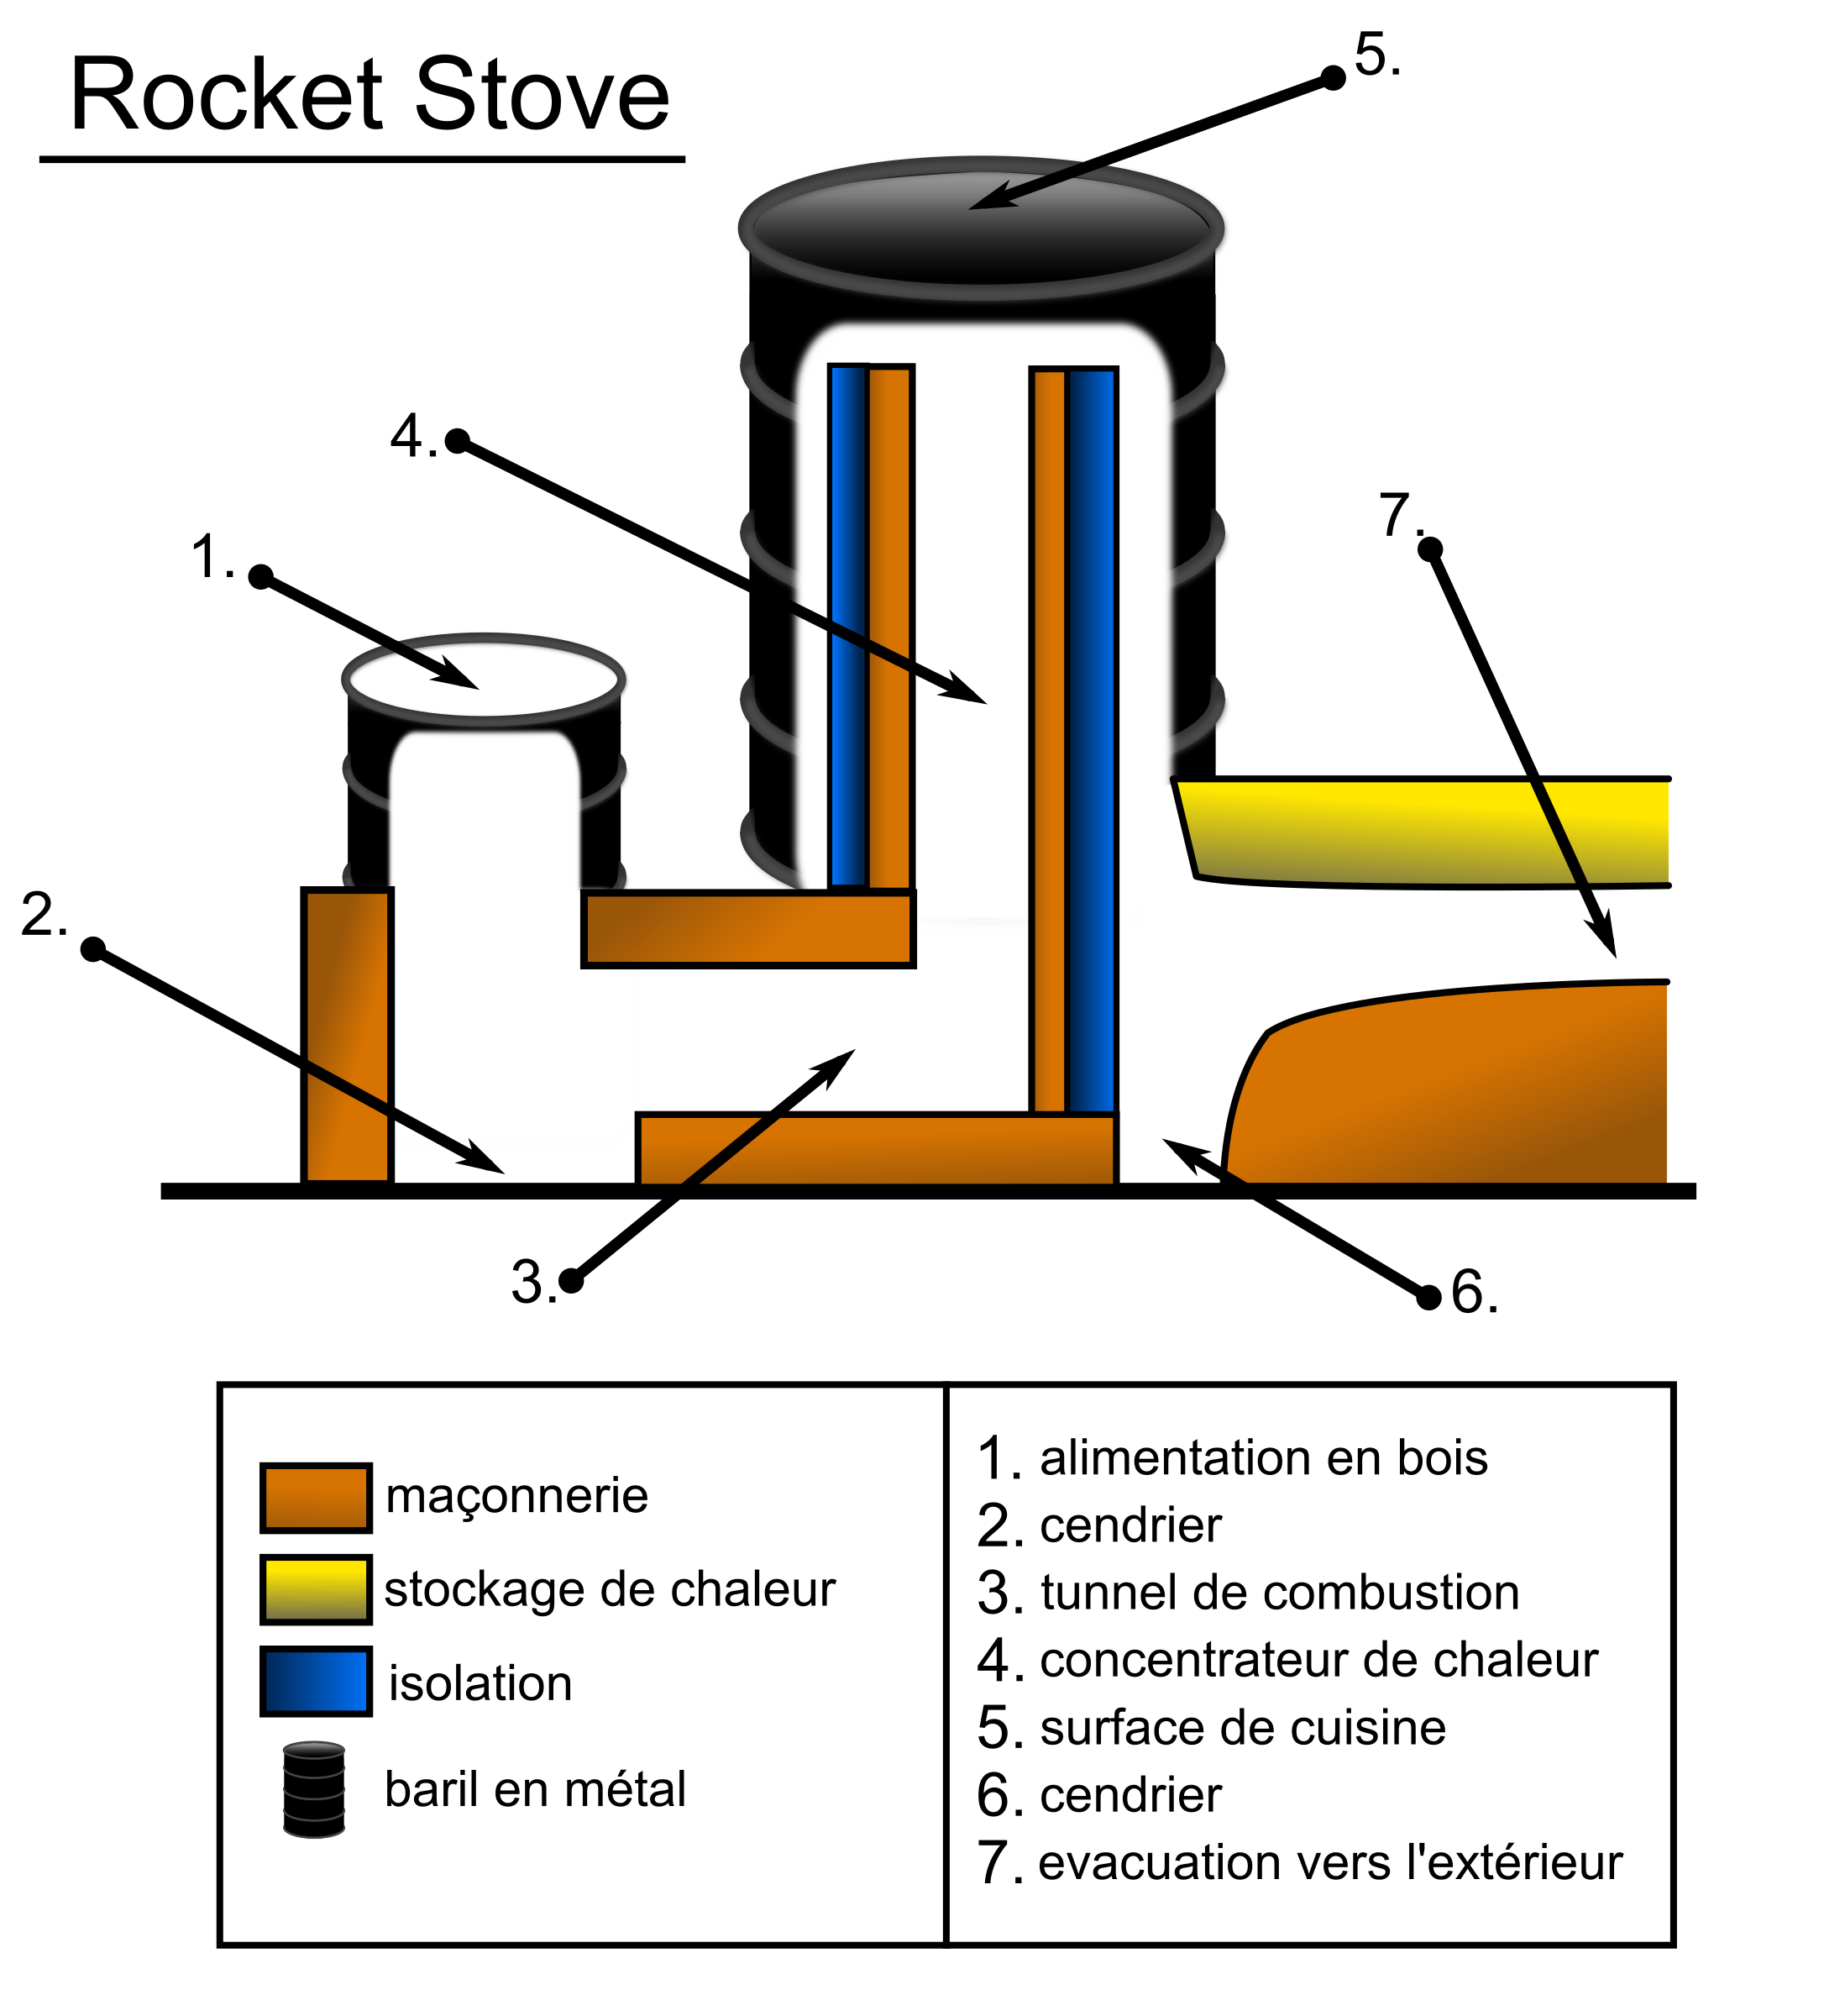 Rocket Stove schema by nbcorp